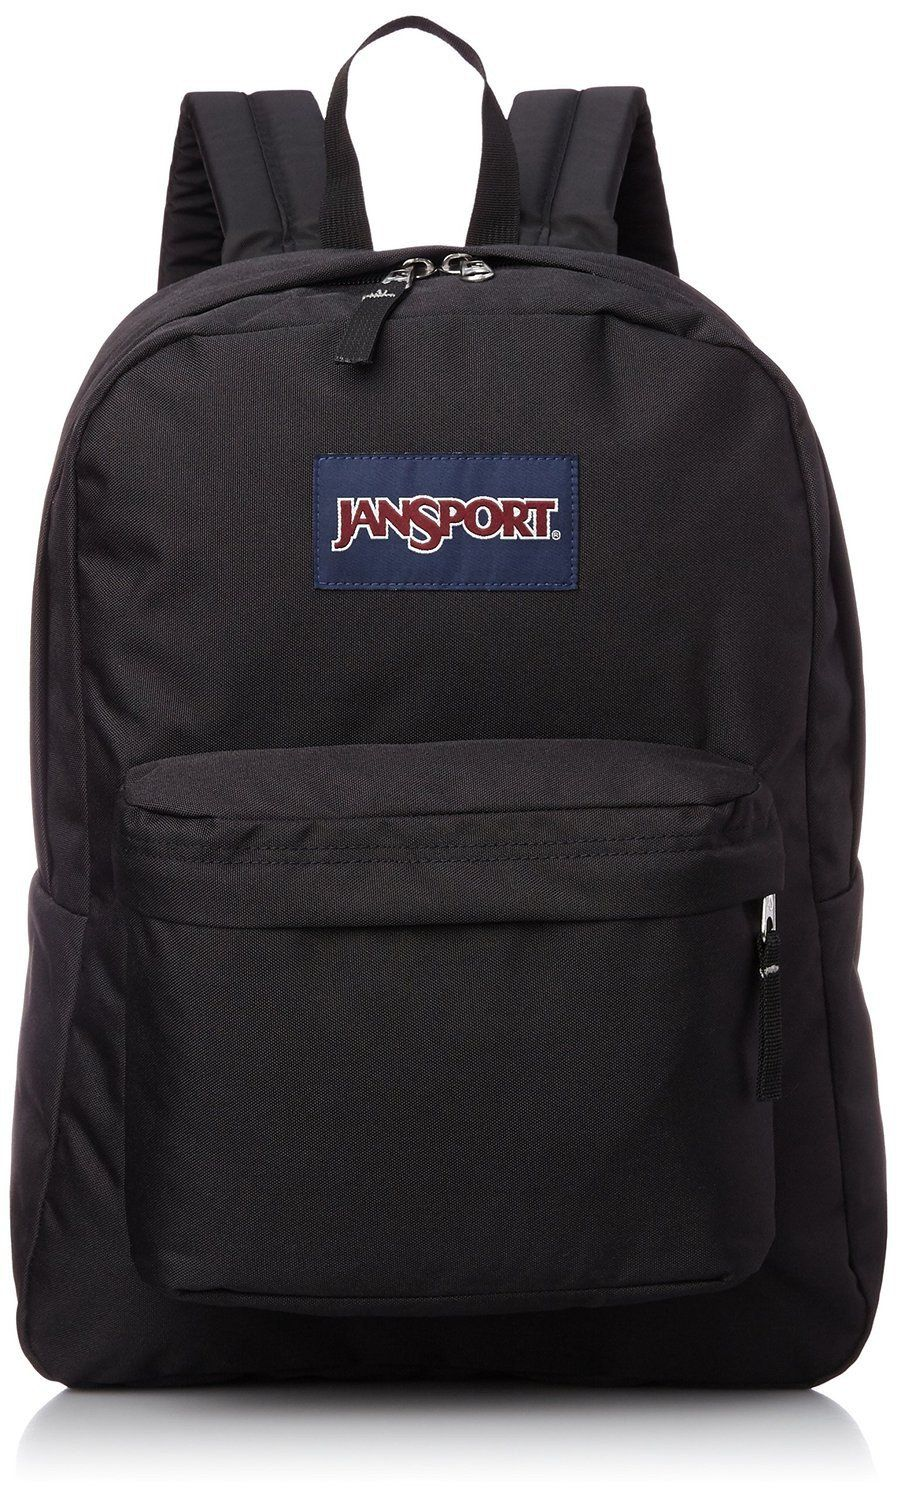 7fbe29f9eda Jansport Superbreak Backpack (Black). Capacity  1550 cu in   25 L ...